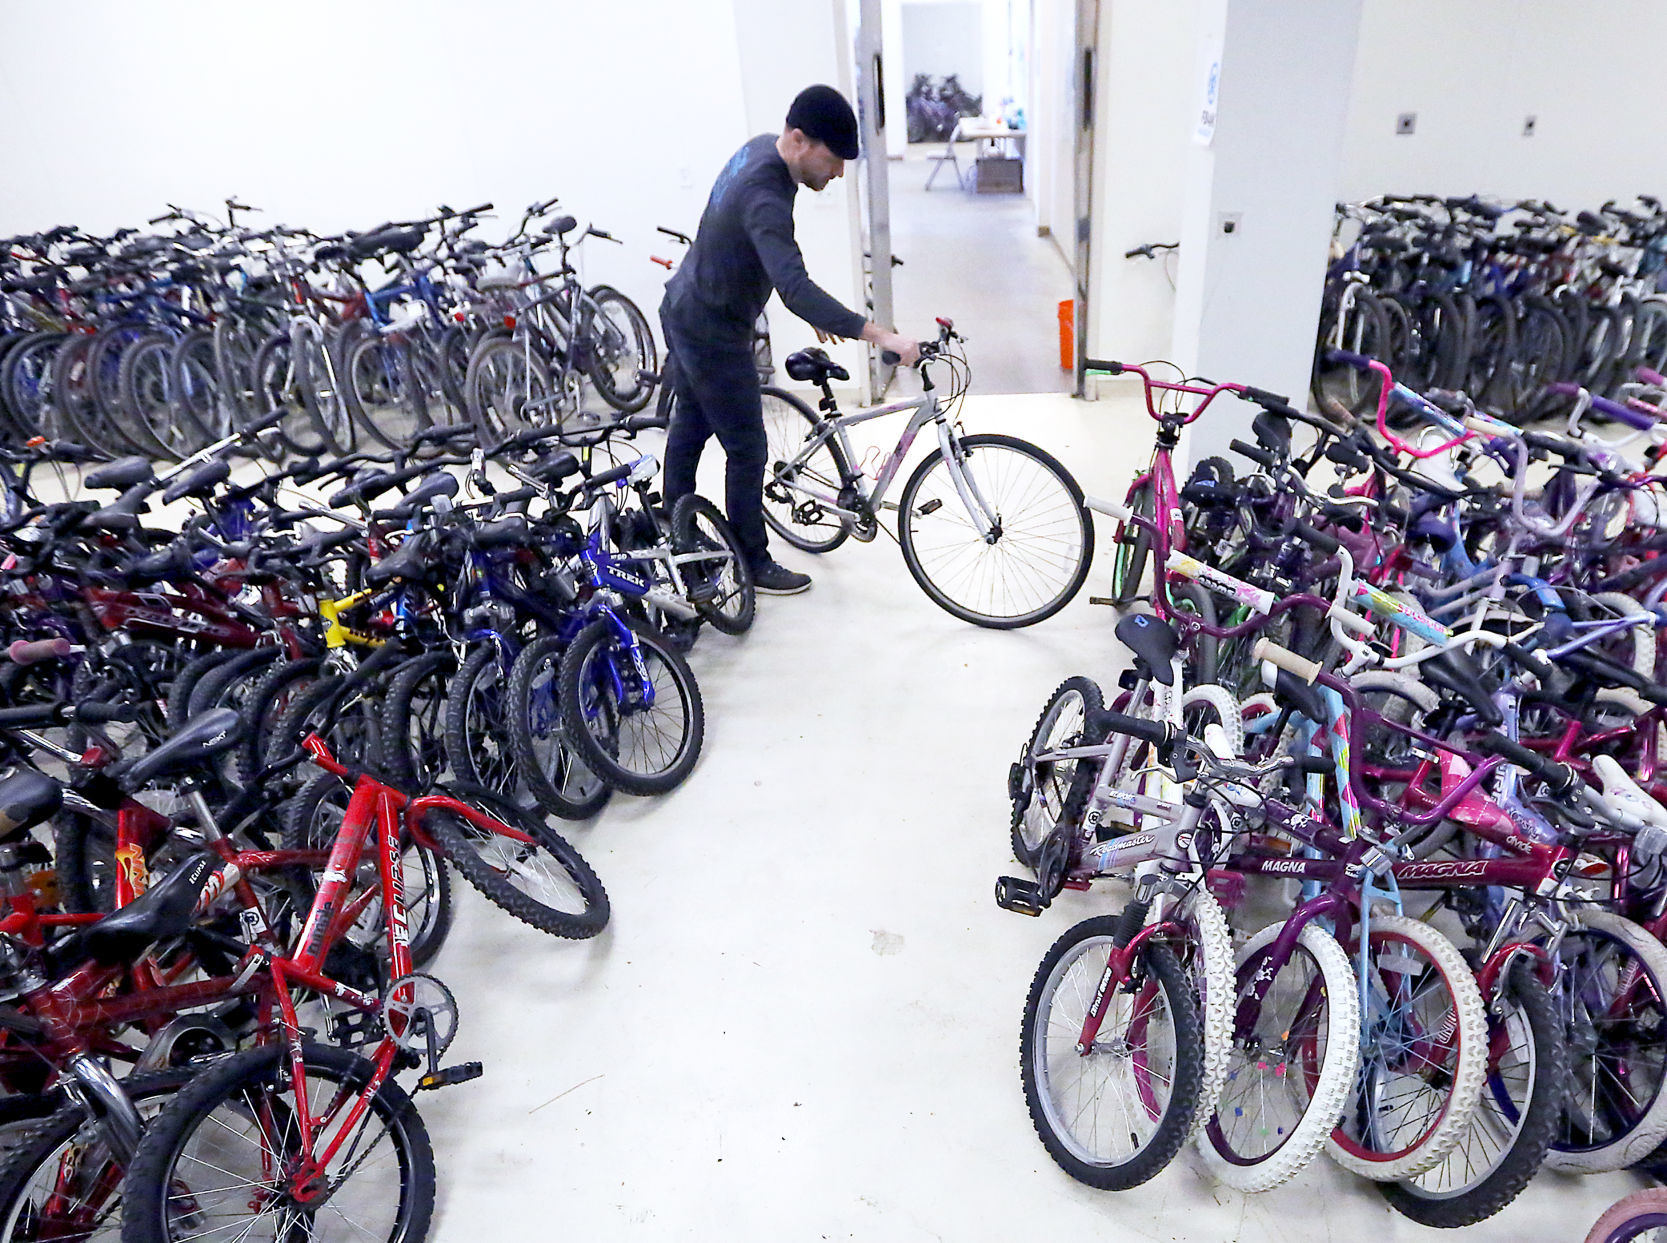 Garage Journal Bike Storage The Goal Giving 1 000 Bikes To Madison Area Kids For Free